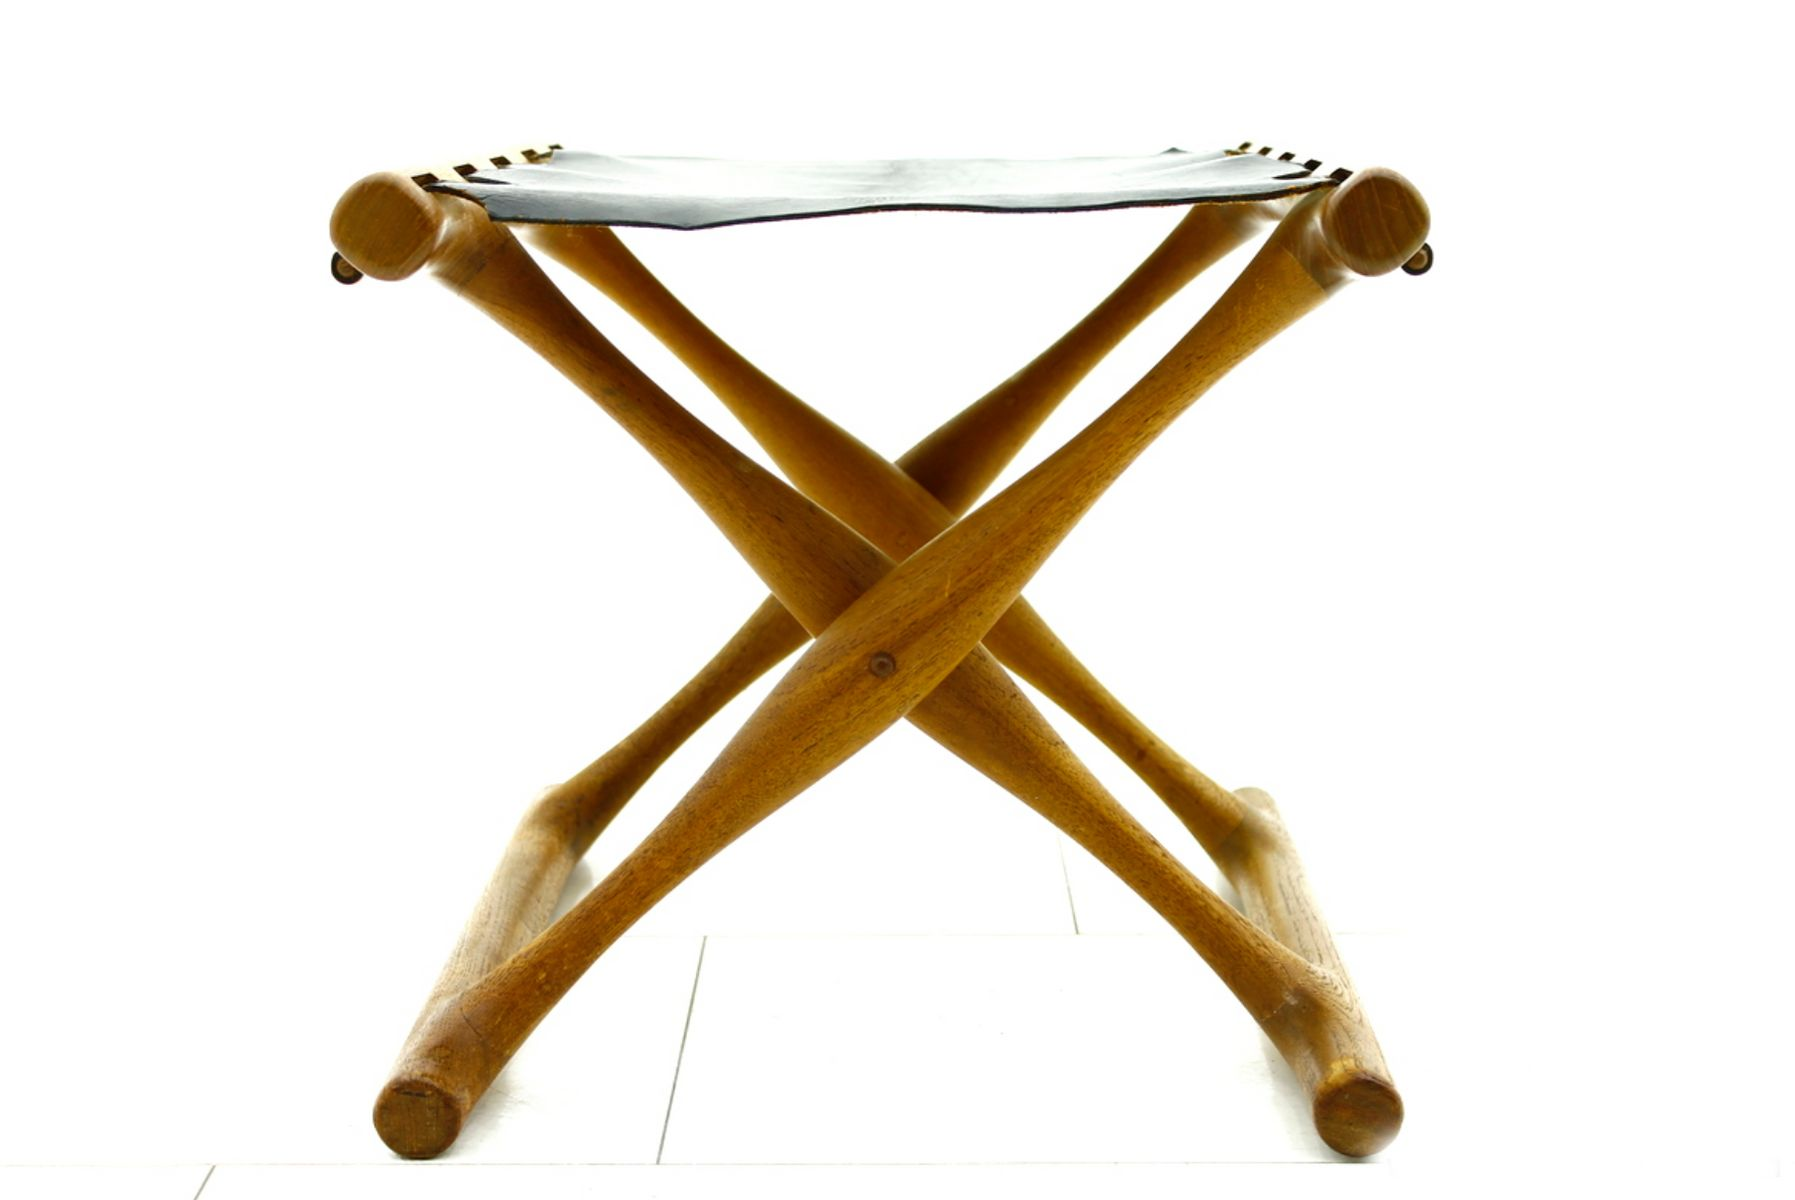 stool chair ph picture frame molding below rail 43 folding by poul hundevad 1950s for sale at pamono